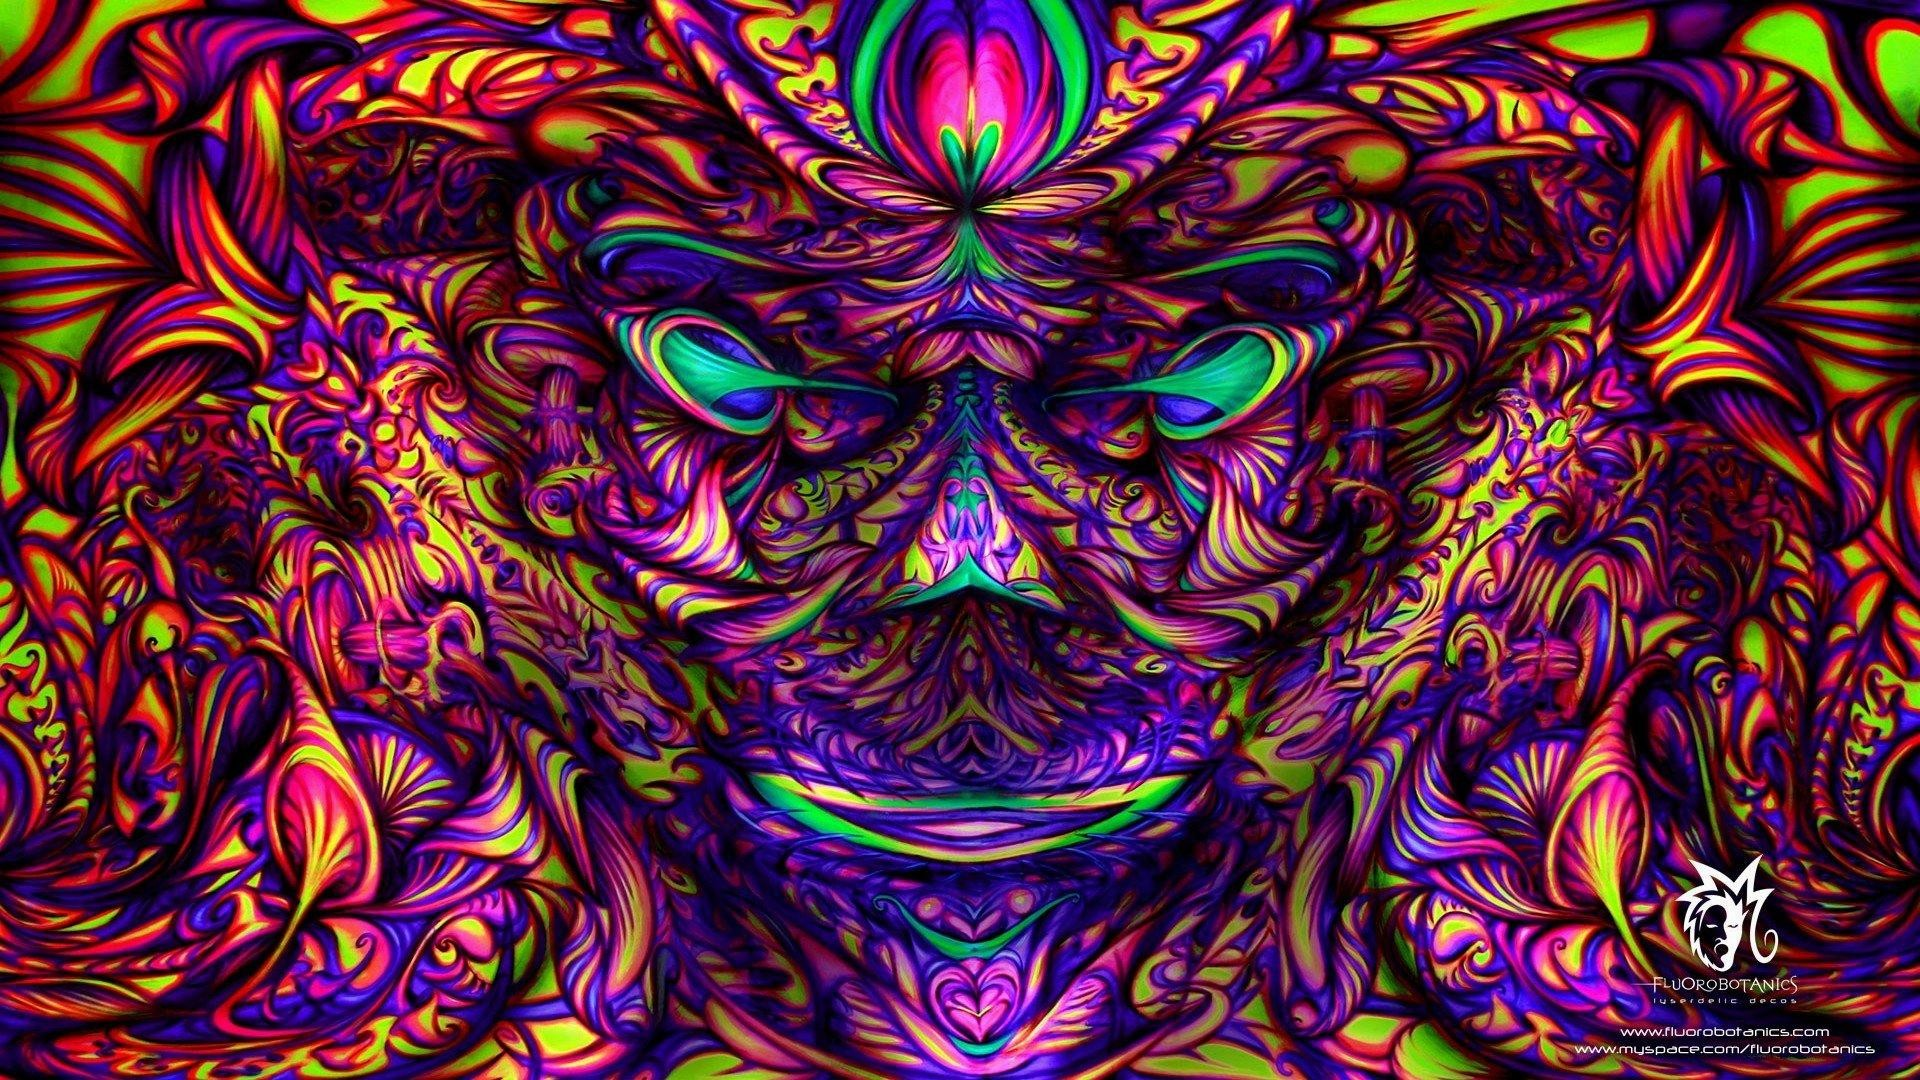 Res: 1920x1080, Psychedelic Wallpapers HD 1920×1080 Trippy Desktop Backgrounds HD (37  Wallpapers) | Adorable Wallpapers